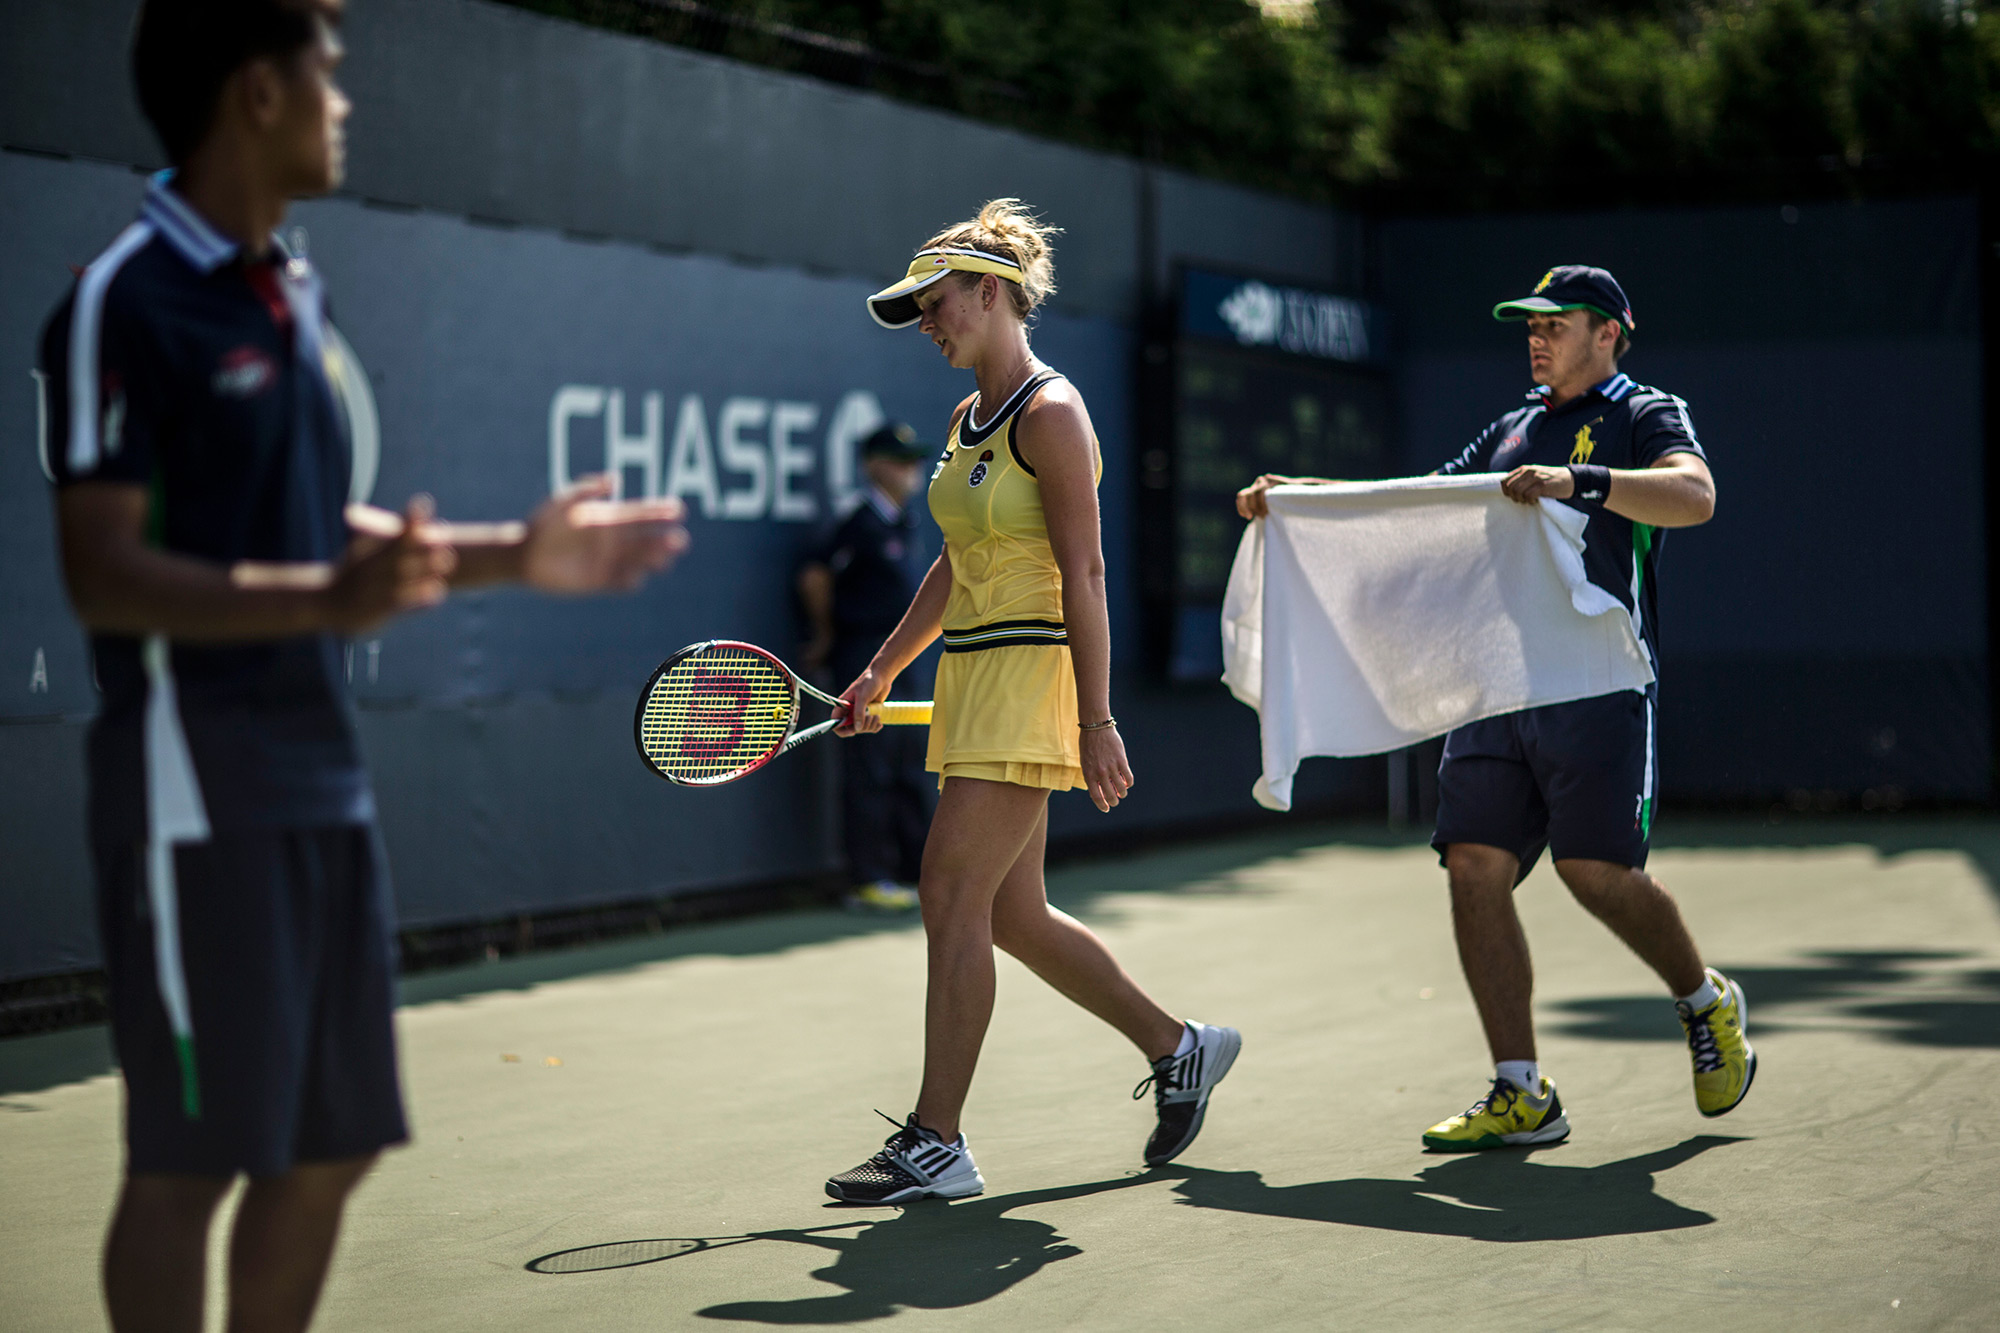 After losing the first set 6-2, Svitolina fought back to force a tiebreaker in the second set. But when she fell behind with the match on the line, she waved off the ball person's towel and headed to the back of the court for a tense moment alone.